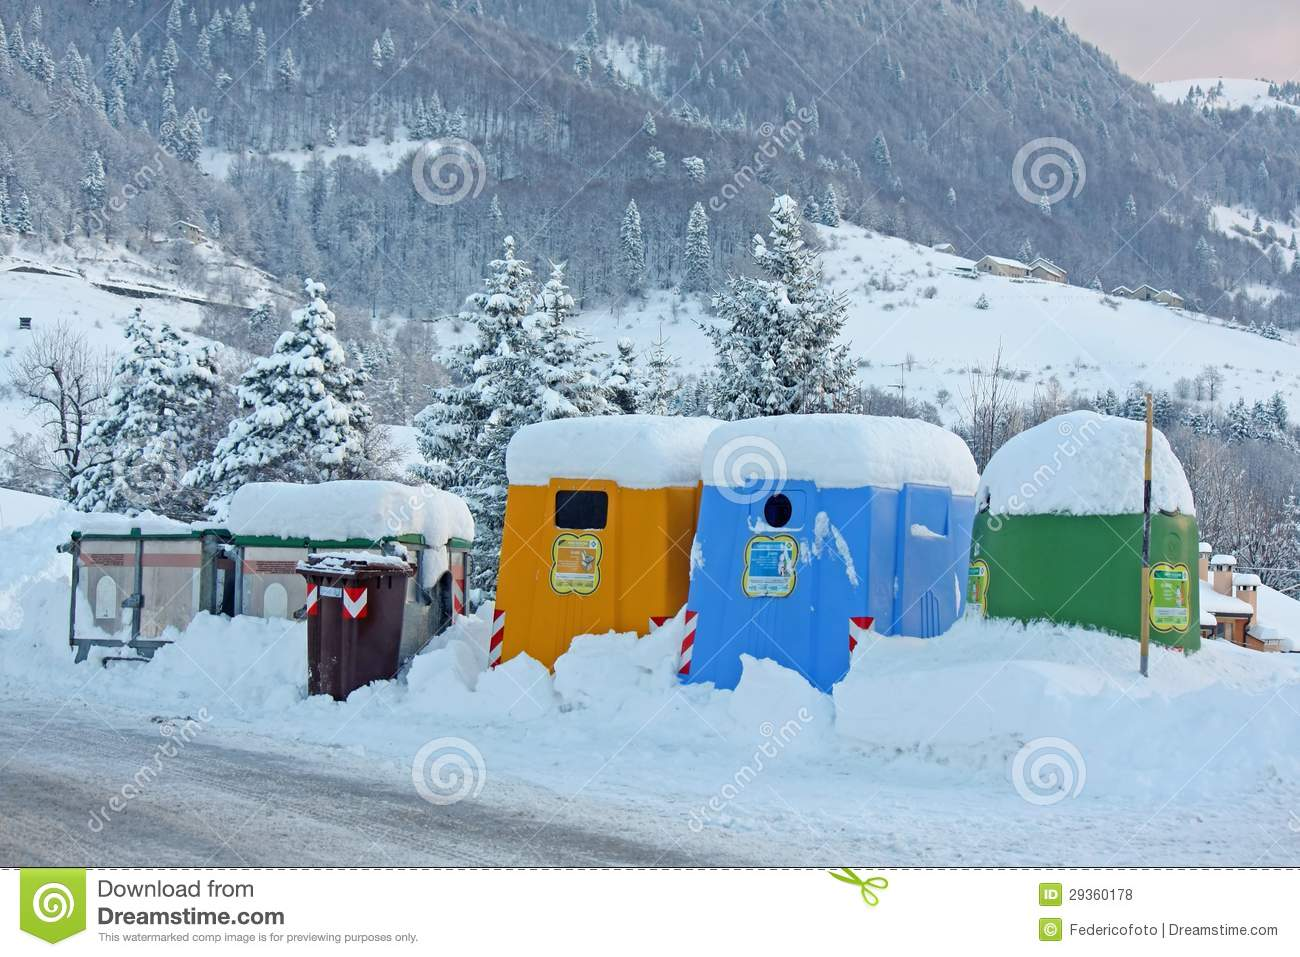 Containers and waste bins along the snow covered mountain road royalty free stock photos image - Rd wastebasket ...